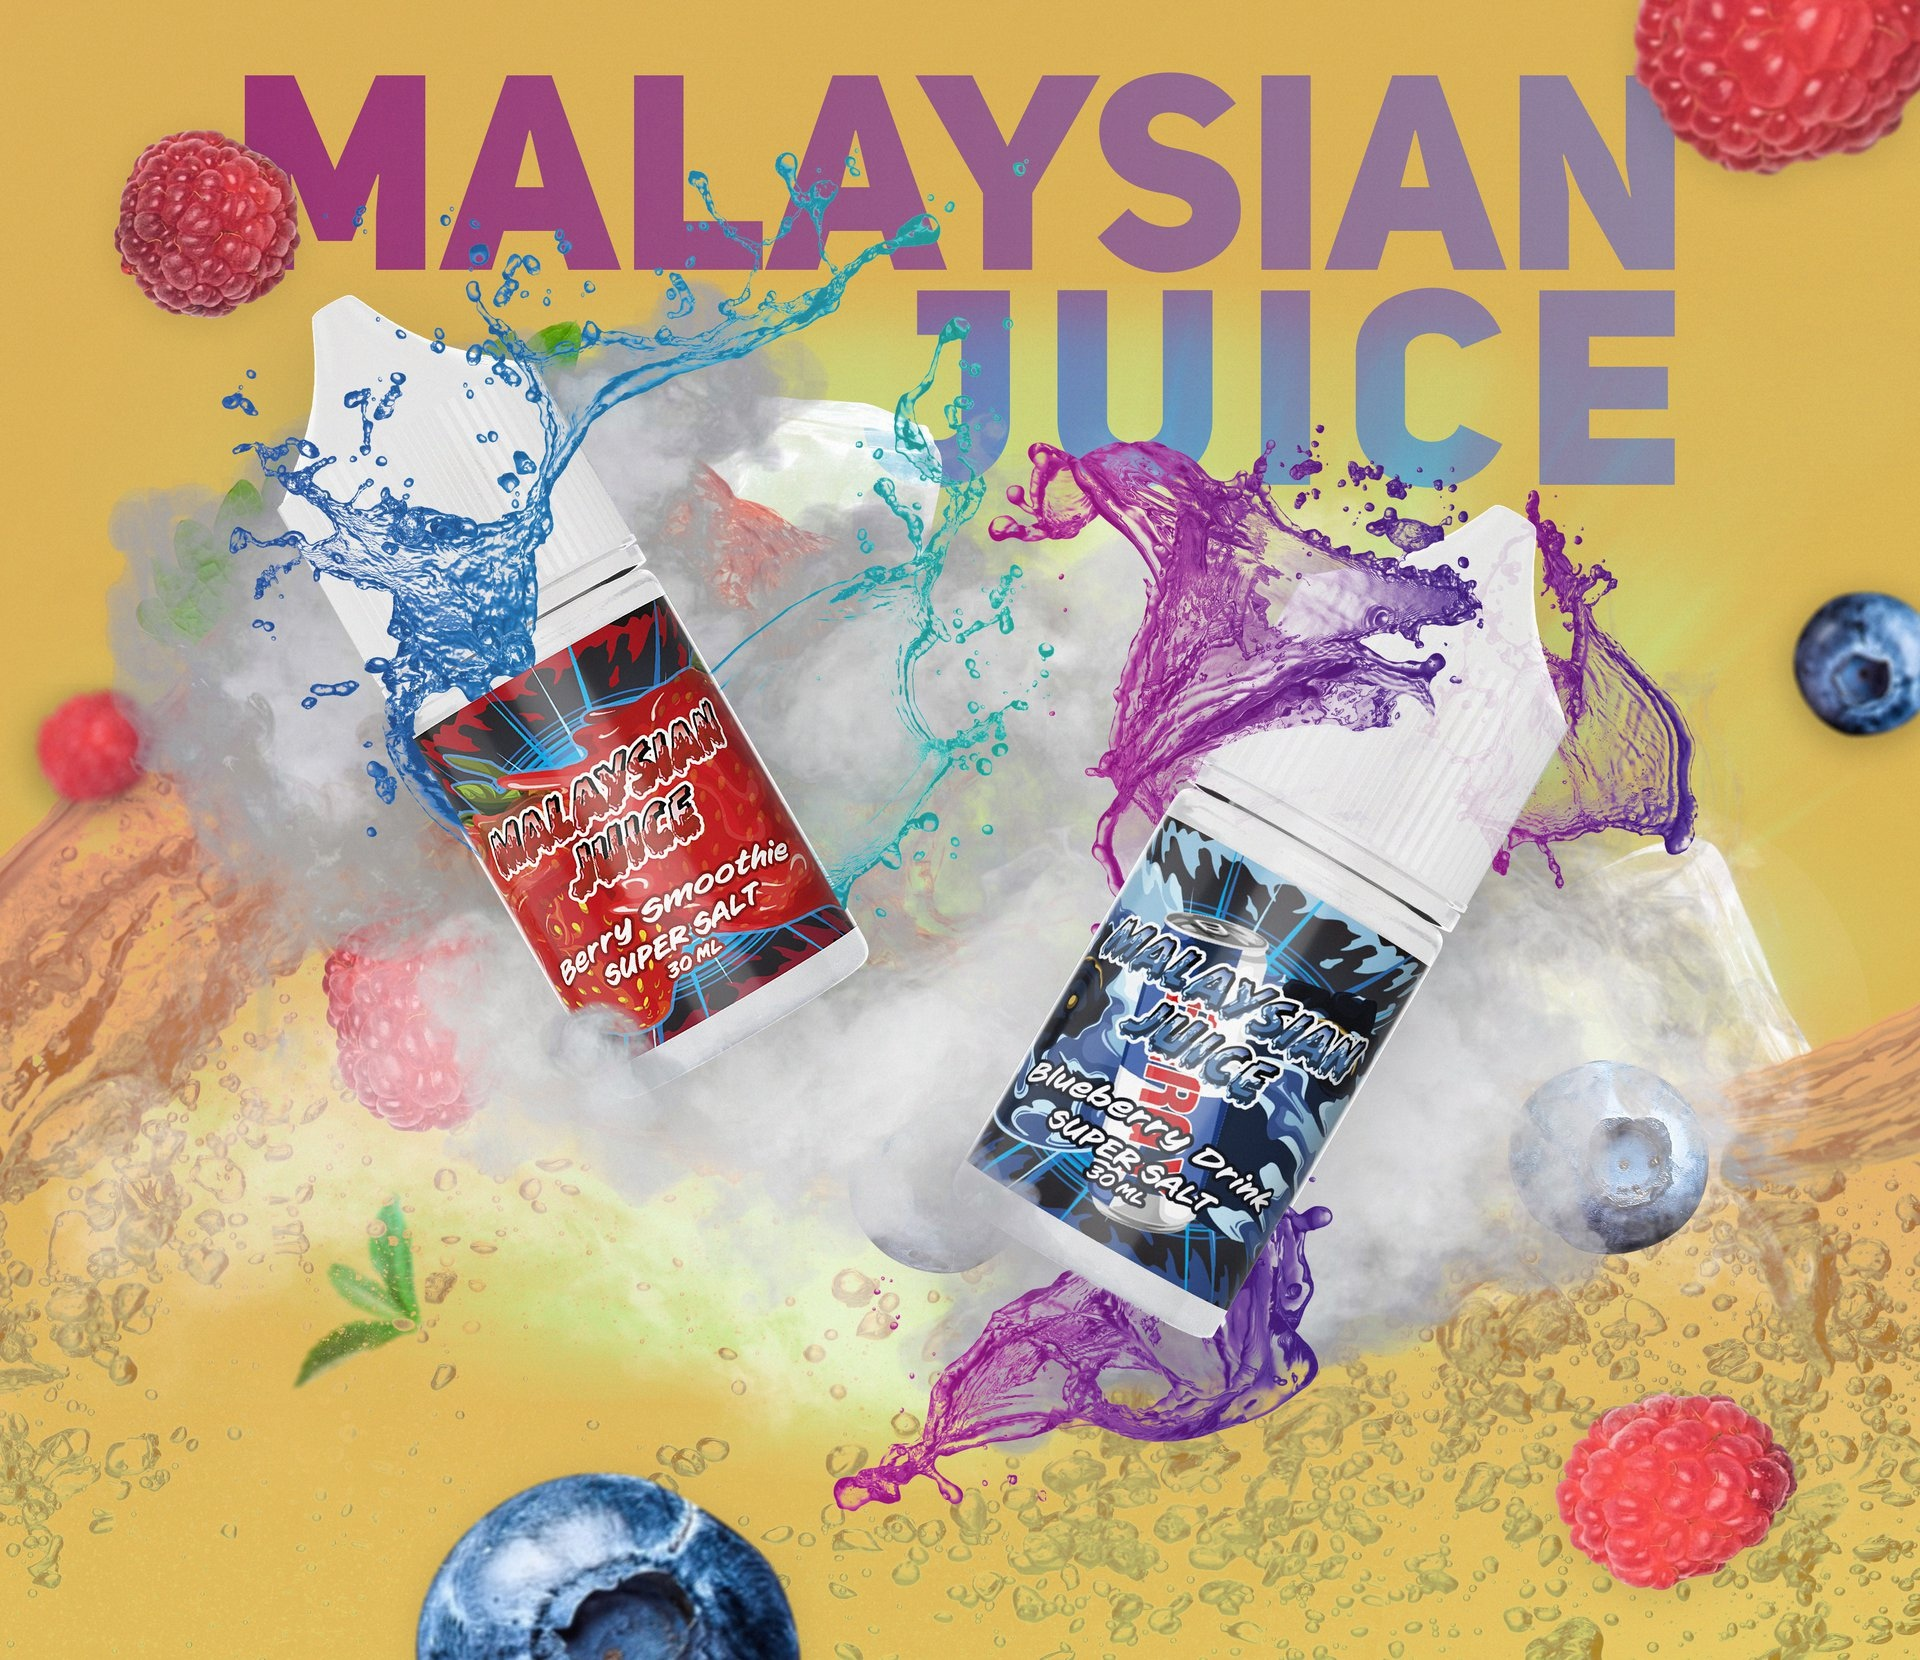 Malaysian Juice by Danger